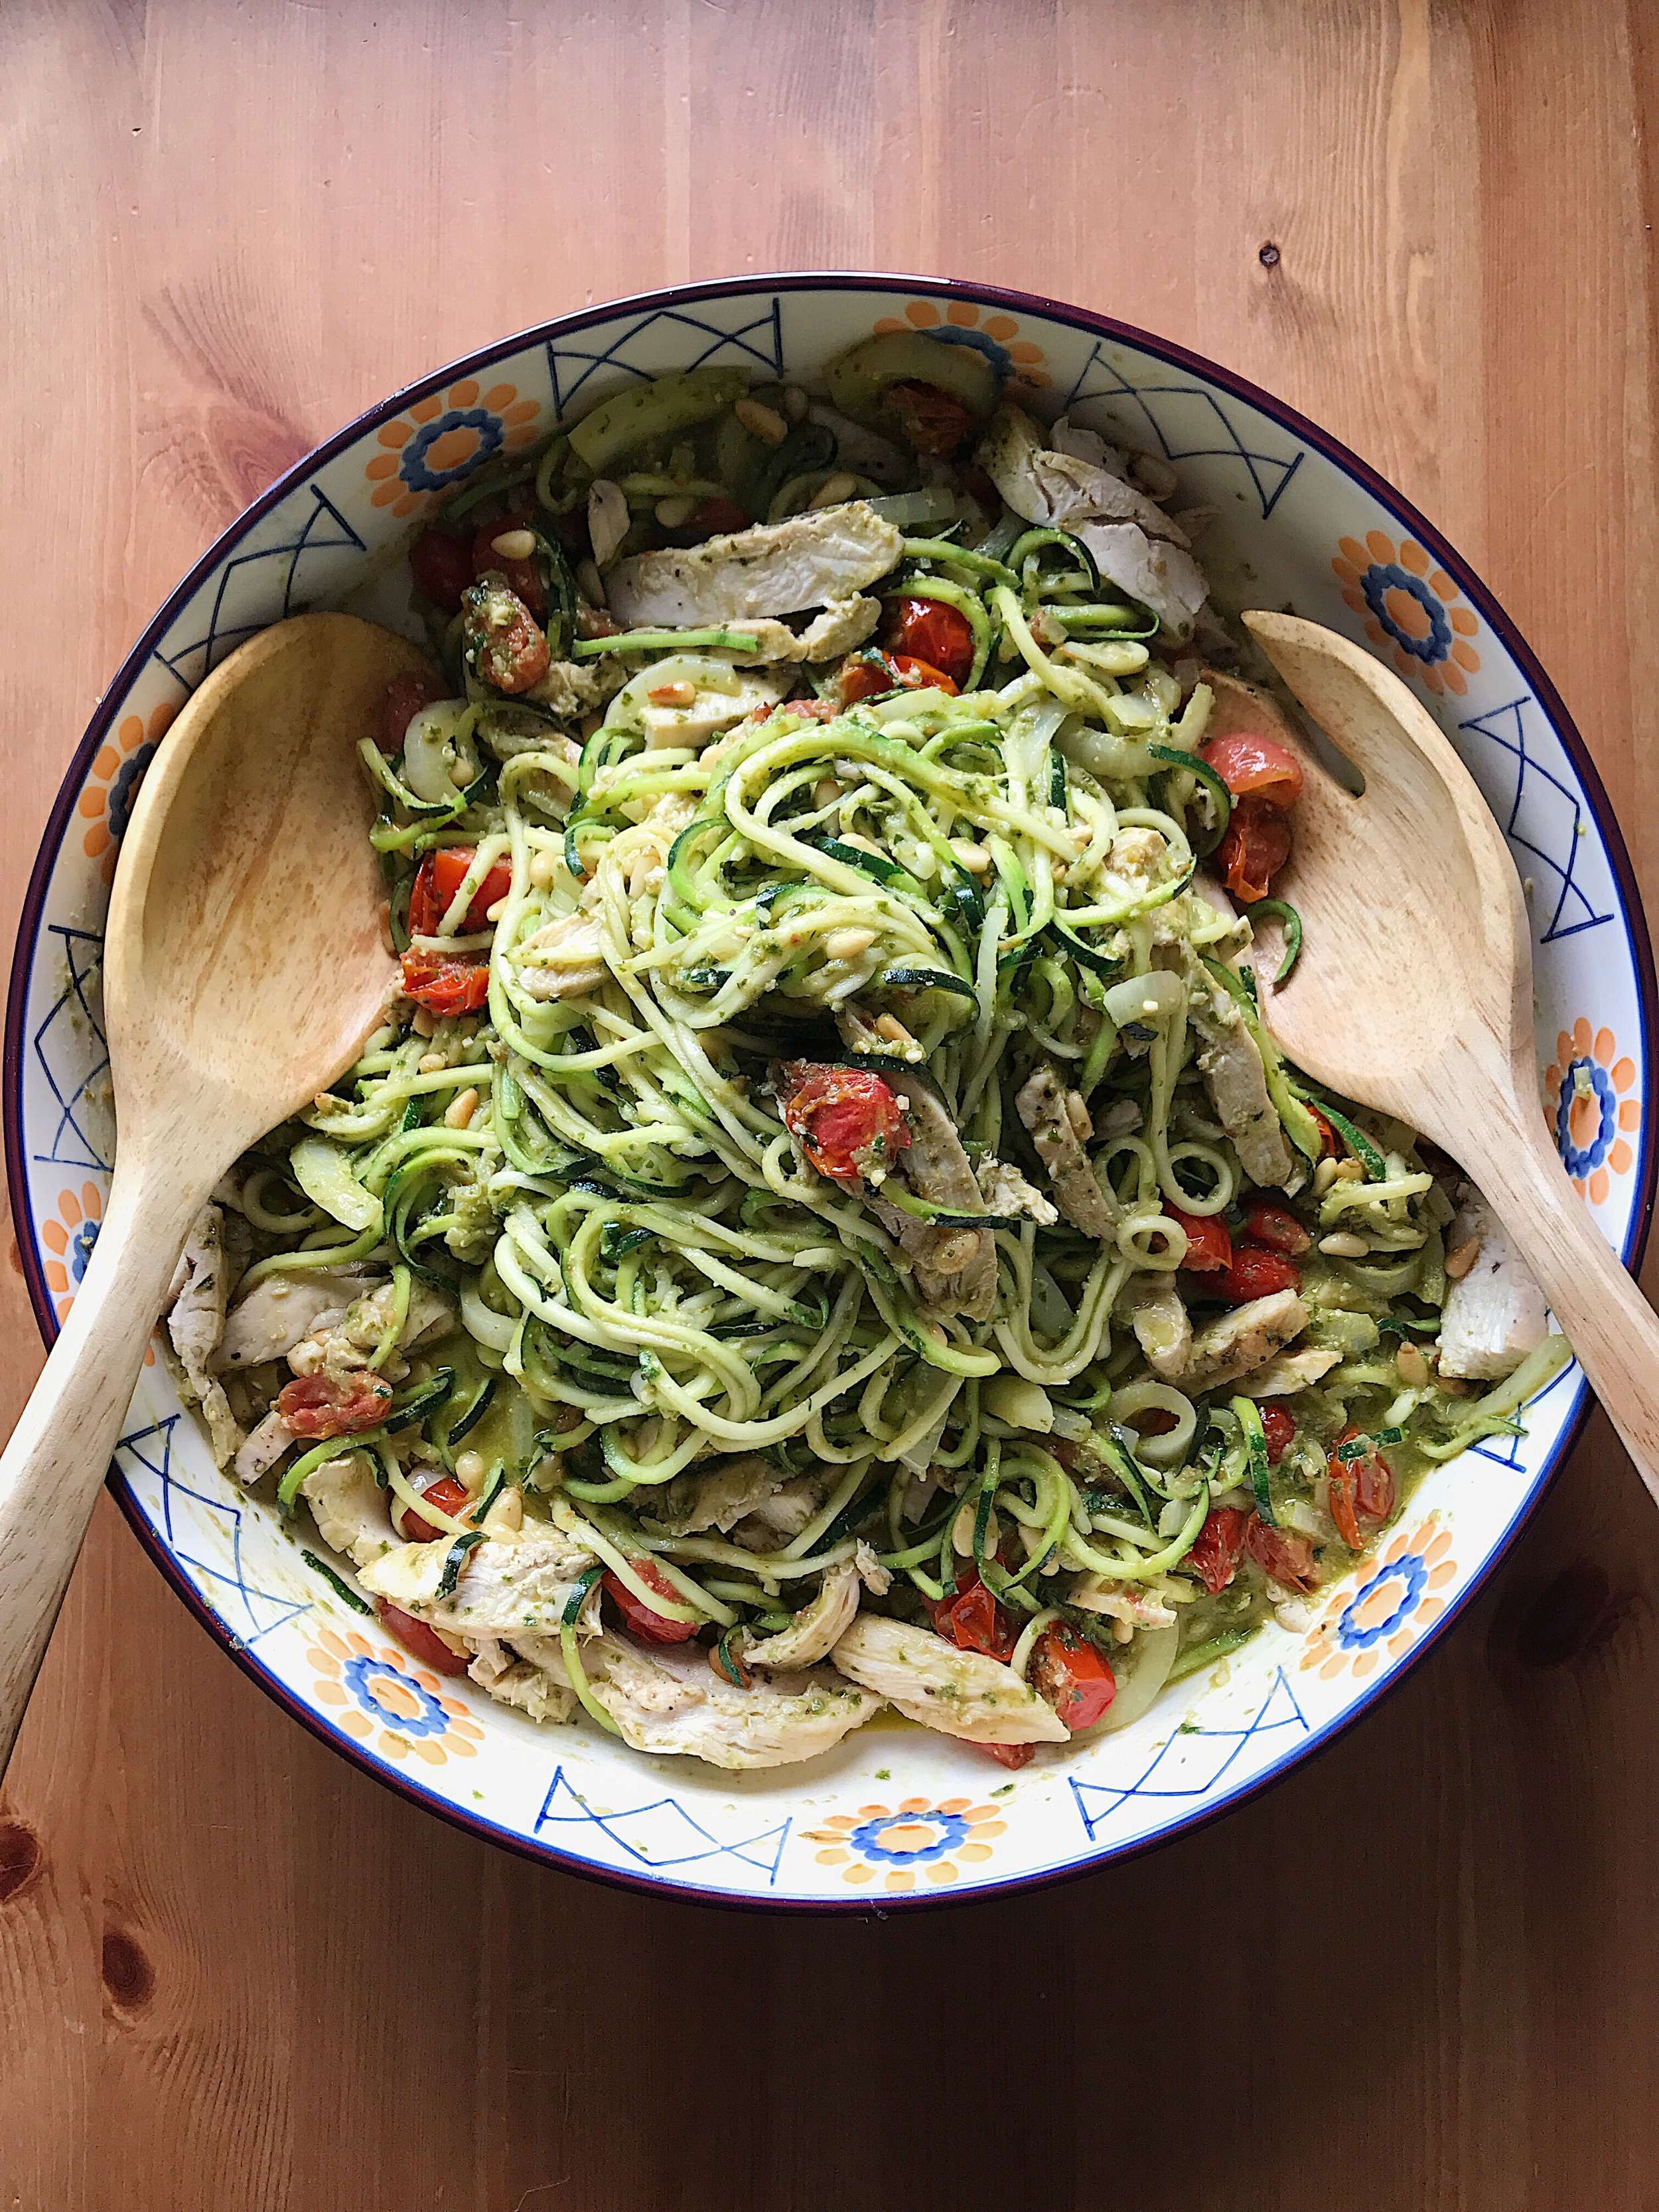 Zoodles have become my new favourite Candida diet-friendly meal. Simply sauté garlic and onions in ghee, throw in some cherry tomatoes, then add pre-cooked organic chicken, spiralized zucchini, toasted pine nuts,lemon juice,and home made pesto (keep on heat until warm).